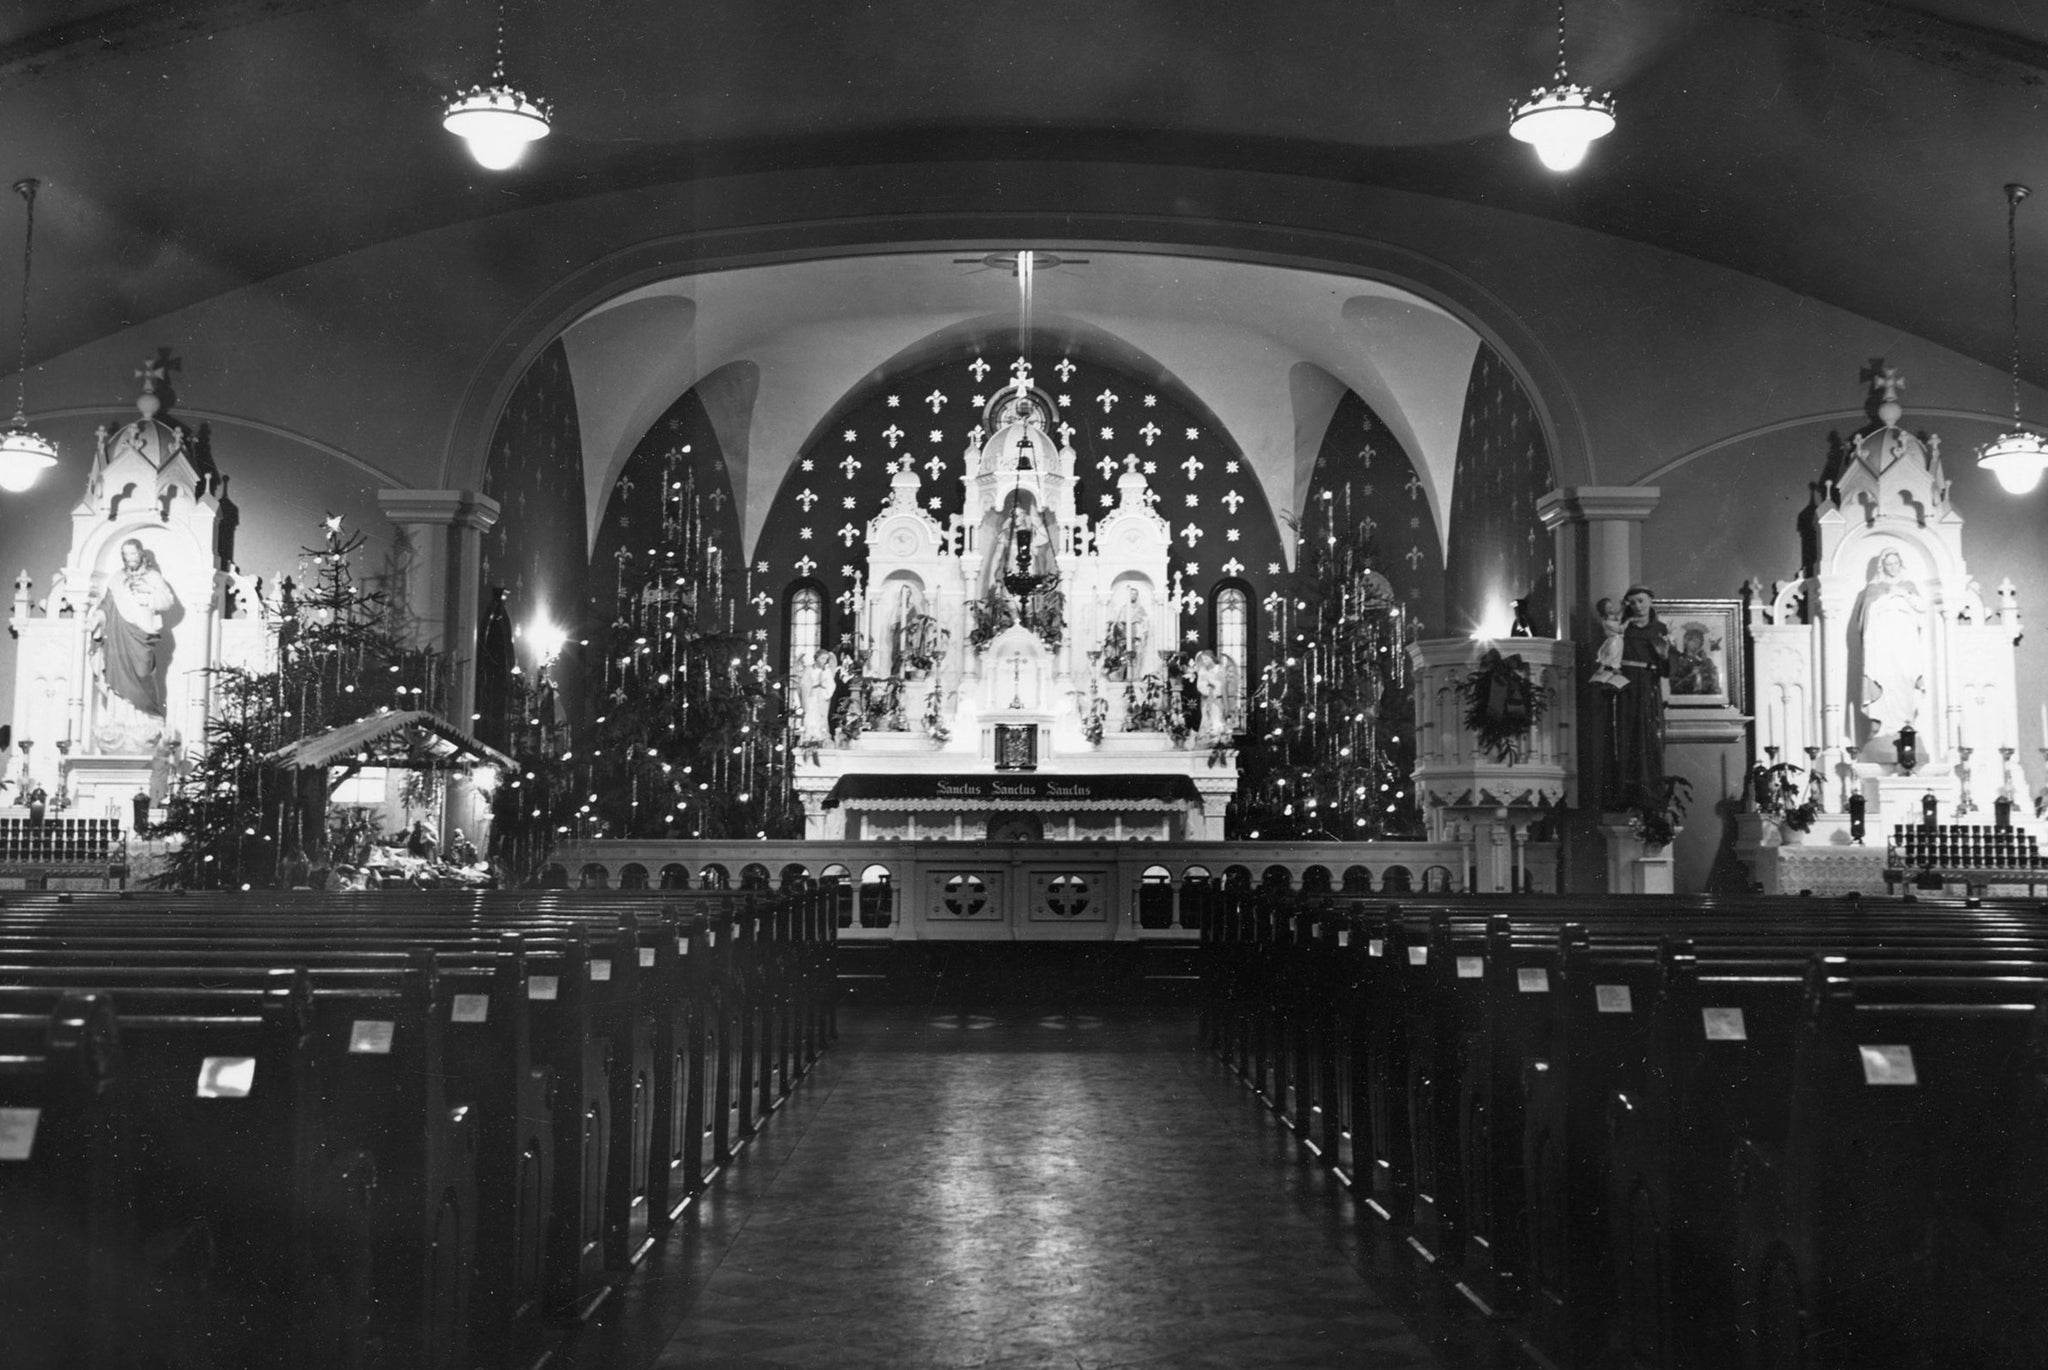 St. Florian Church at the corner of Hertel Avenue and St. Florian Street, decorated for Christmas in 1947. The church opened in 1916 and closed in 2007. -- AUDREY KAMINSKI